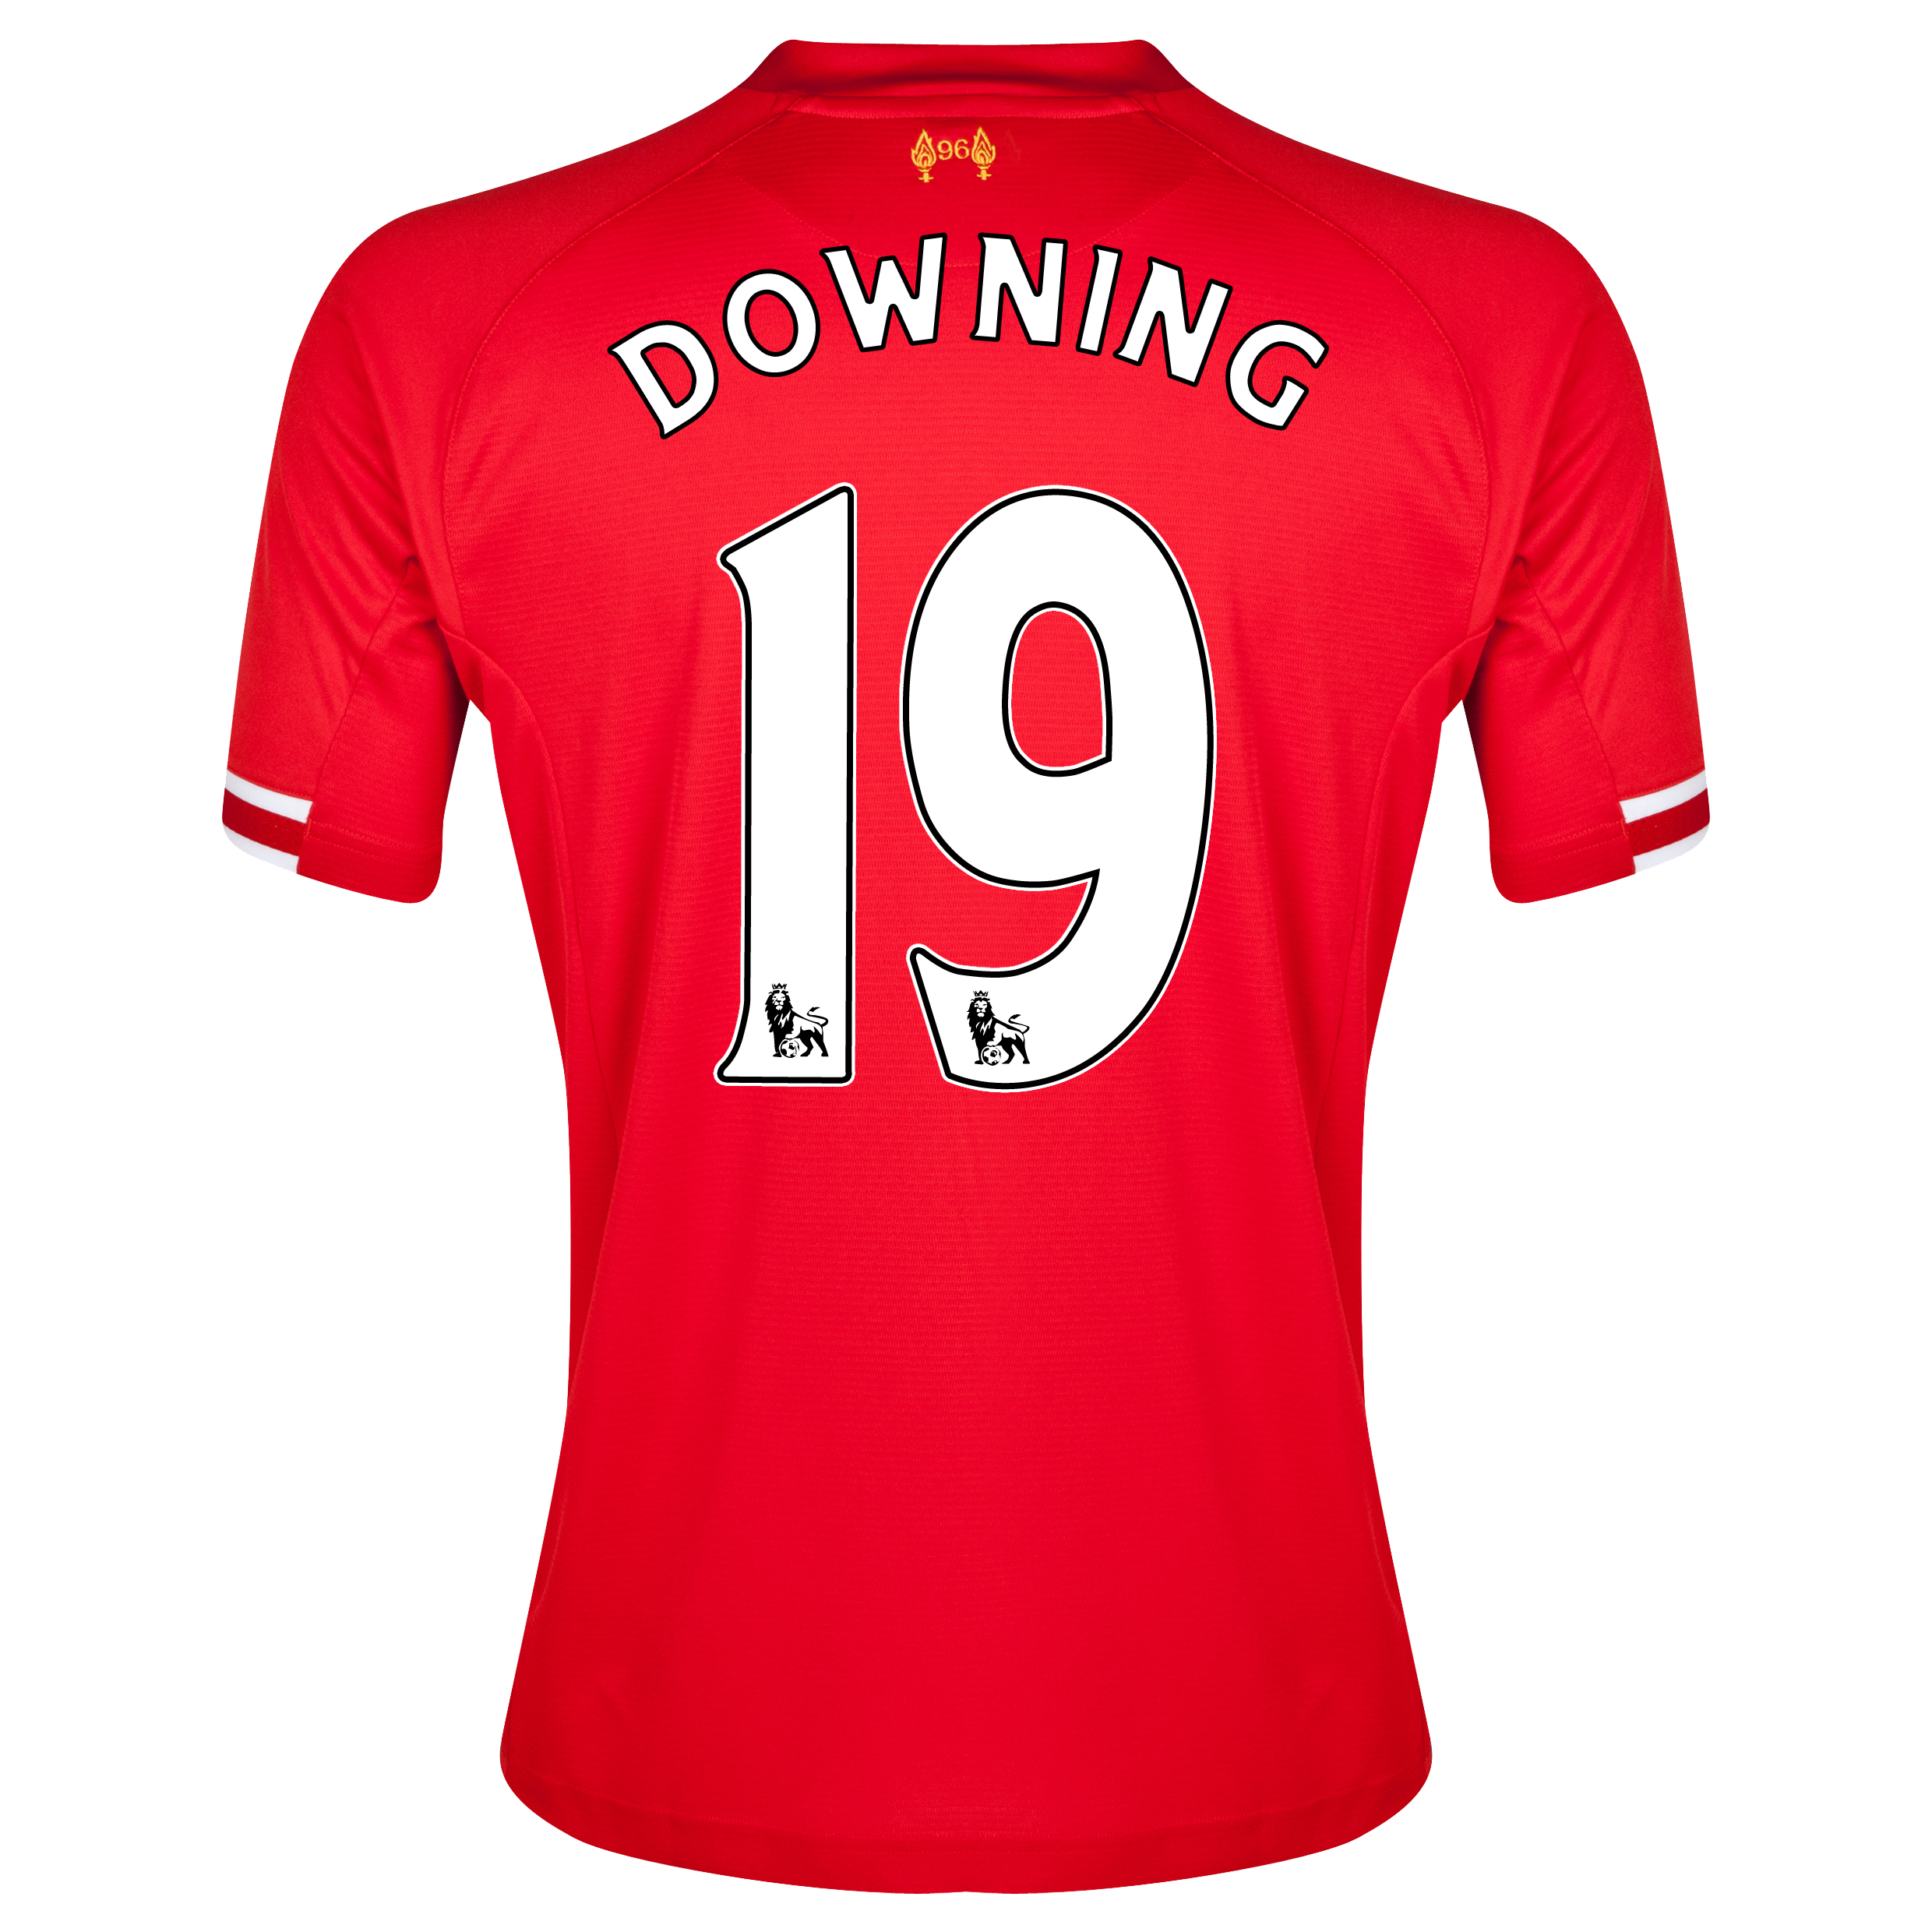 Liverpool Home Shirt 2013/14 with Downing 19 printing